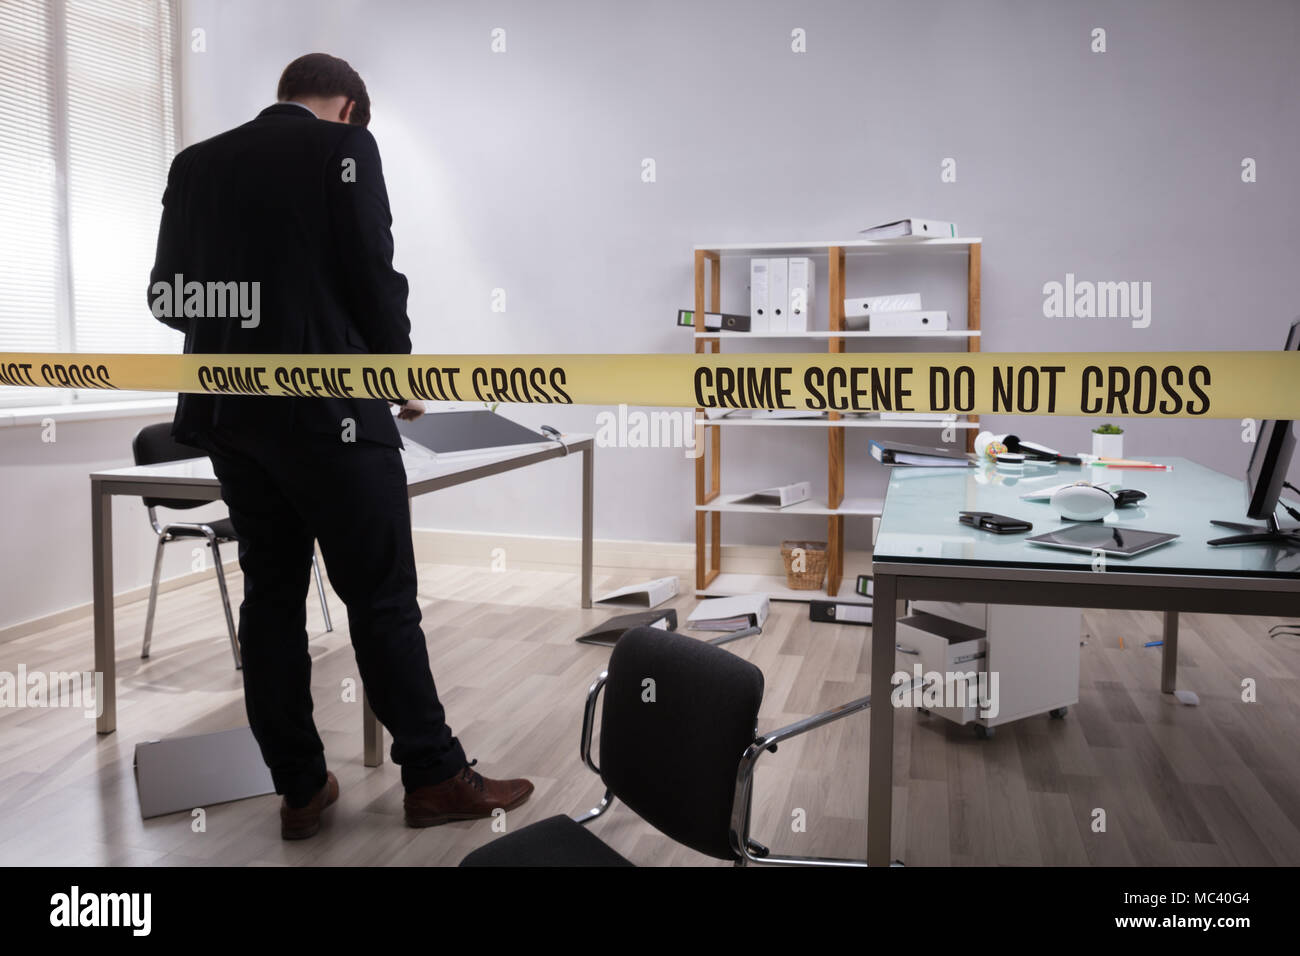 Investigator Collecting Evidence In Office Behind Yellow Crime Scene Tape - Stock Image